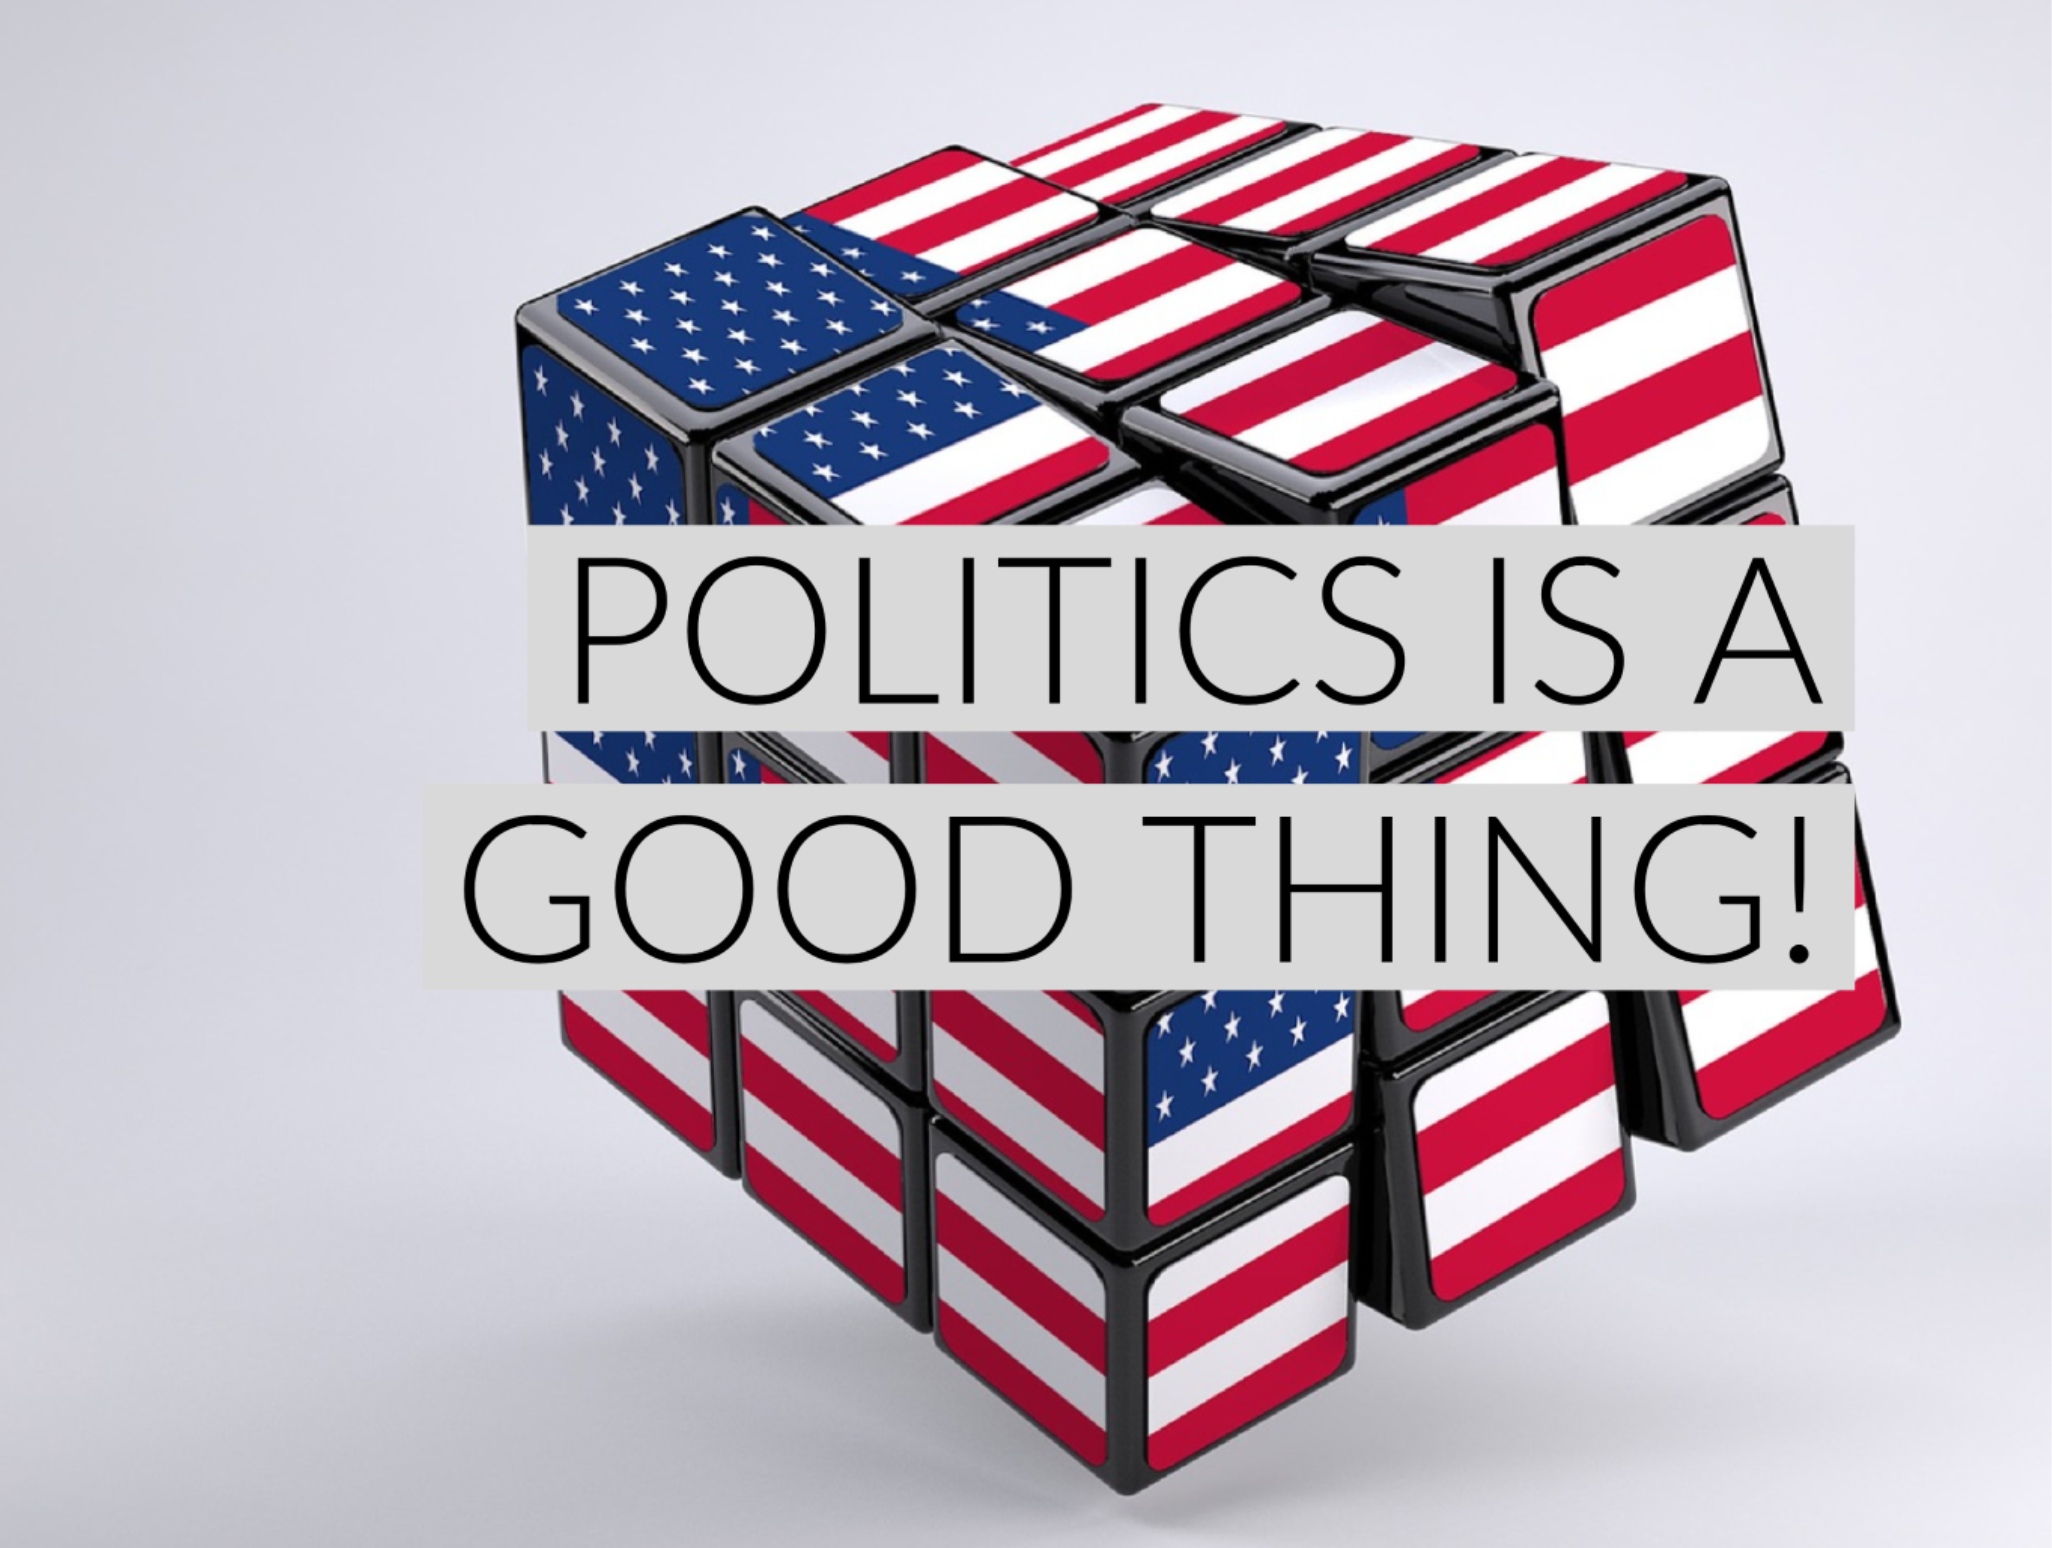 POLITICS IS A GOOD THING